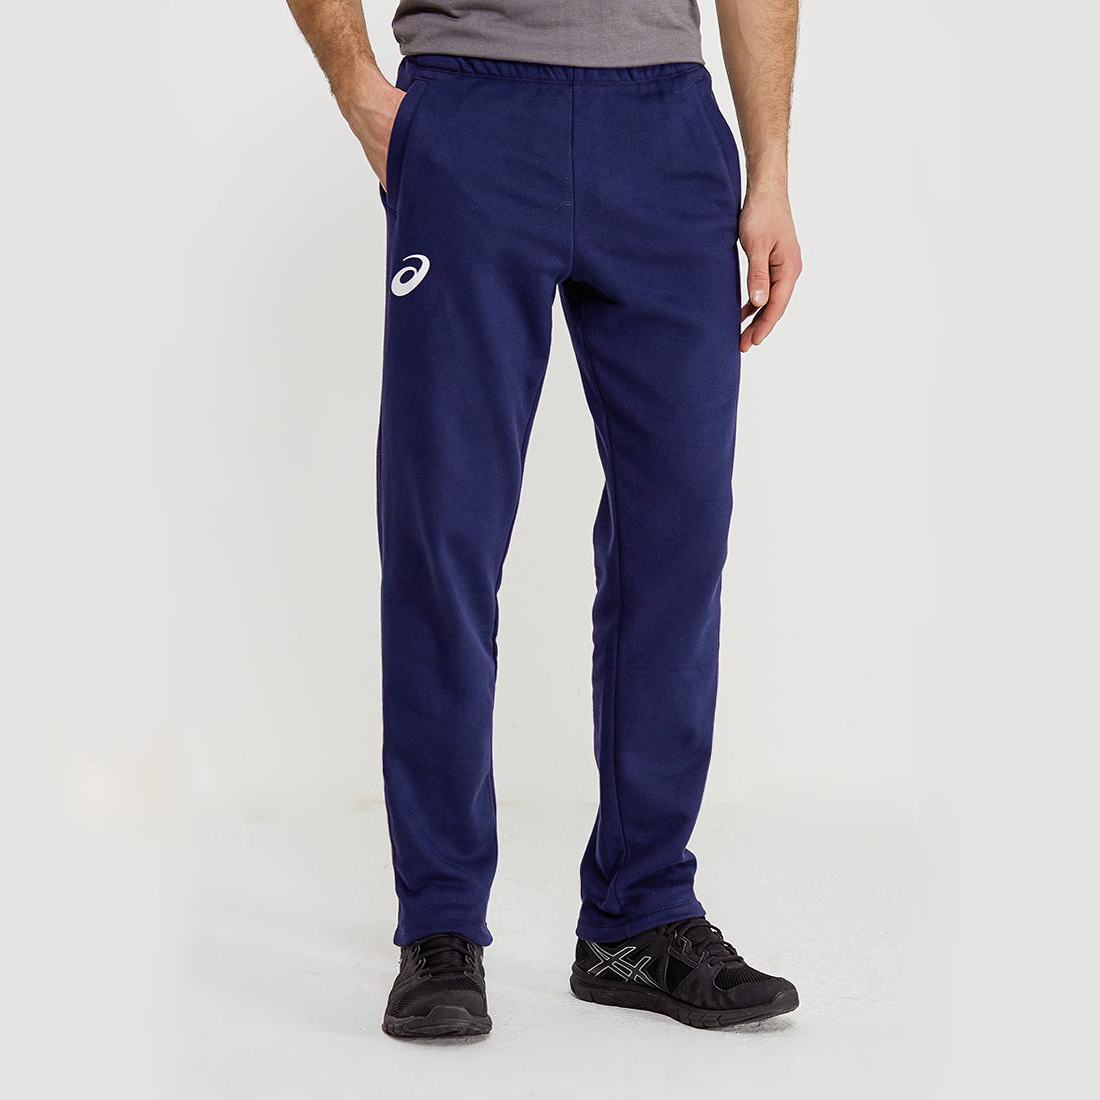 Брюки Asics Man Knit Pant 156857-0891